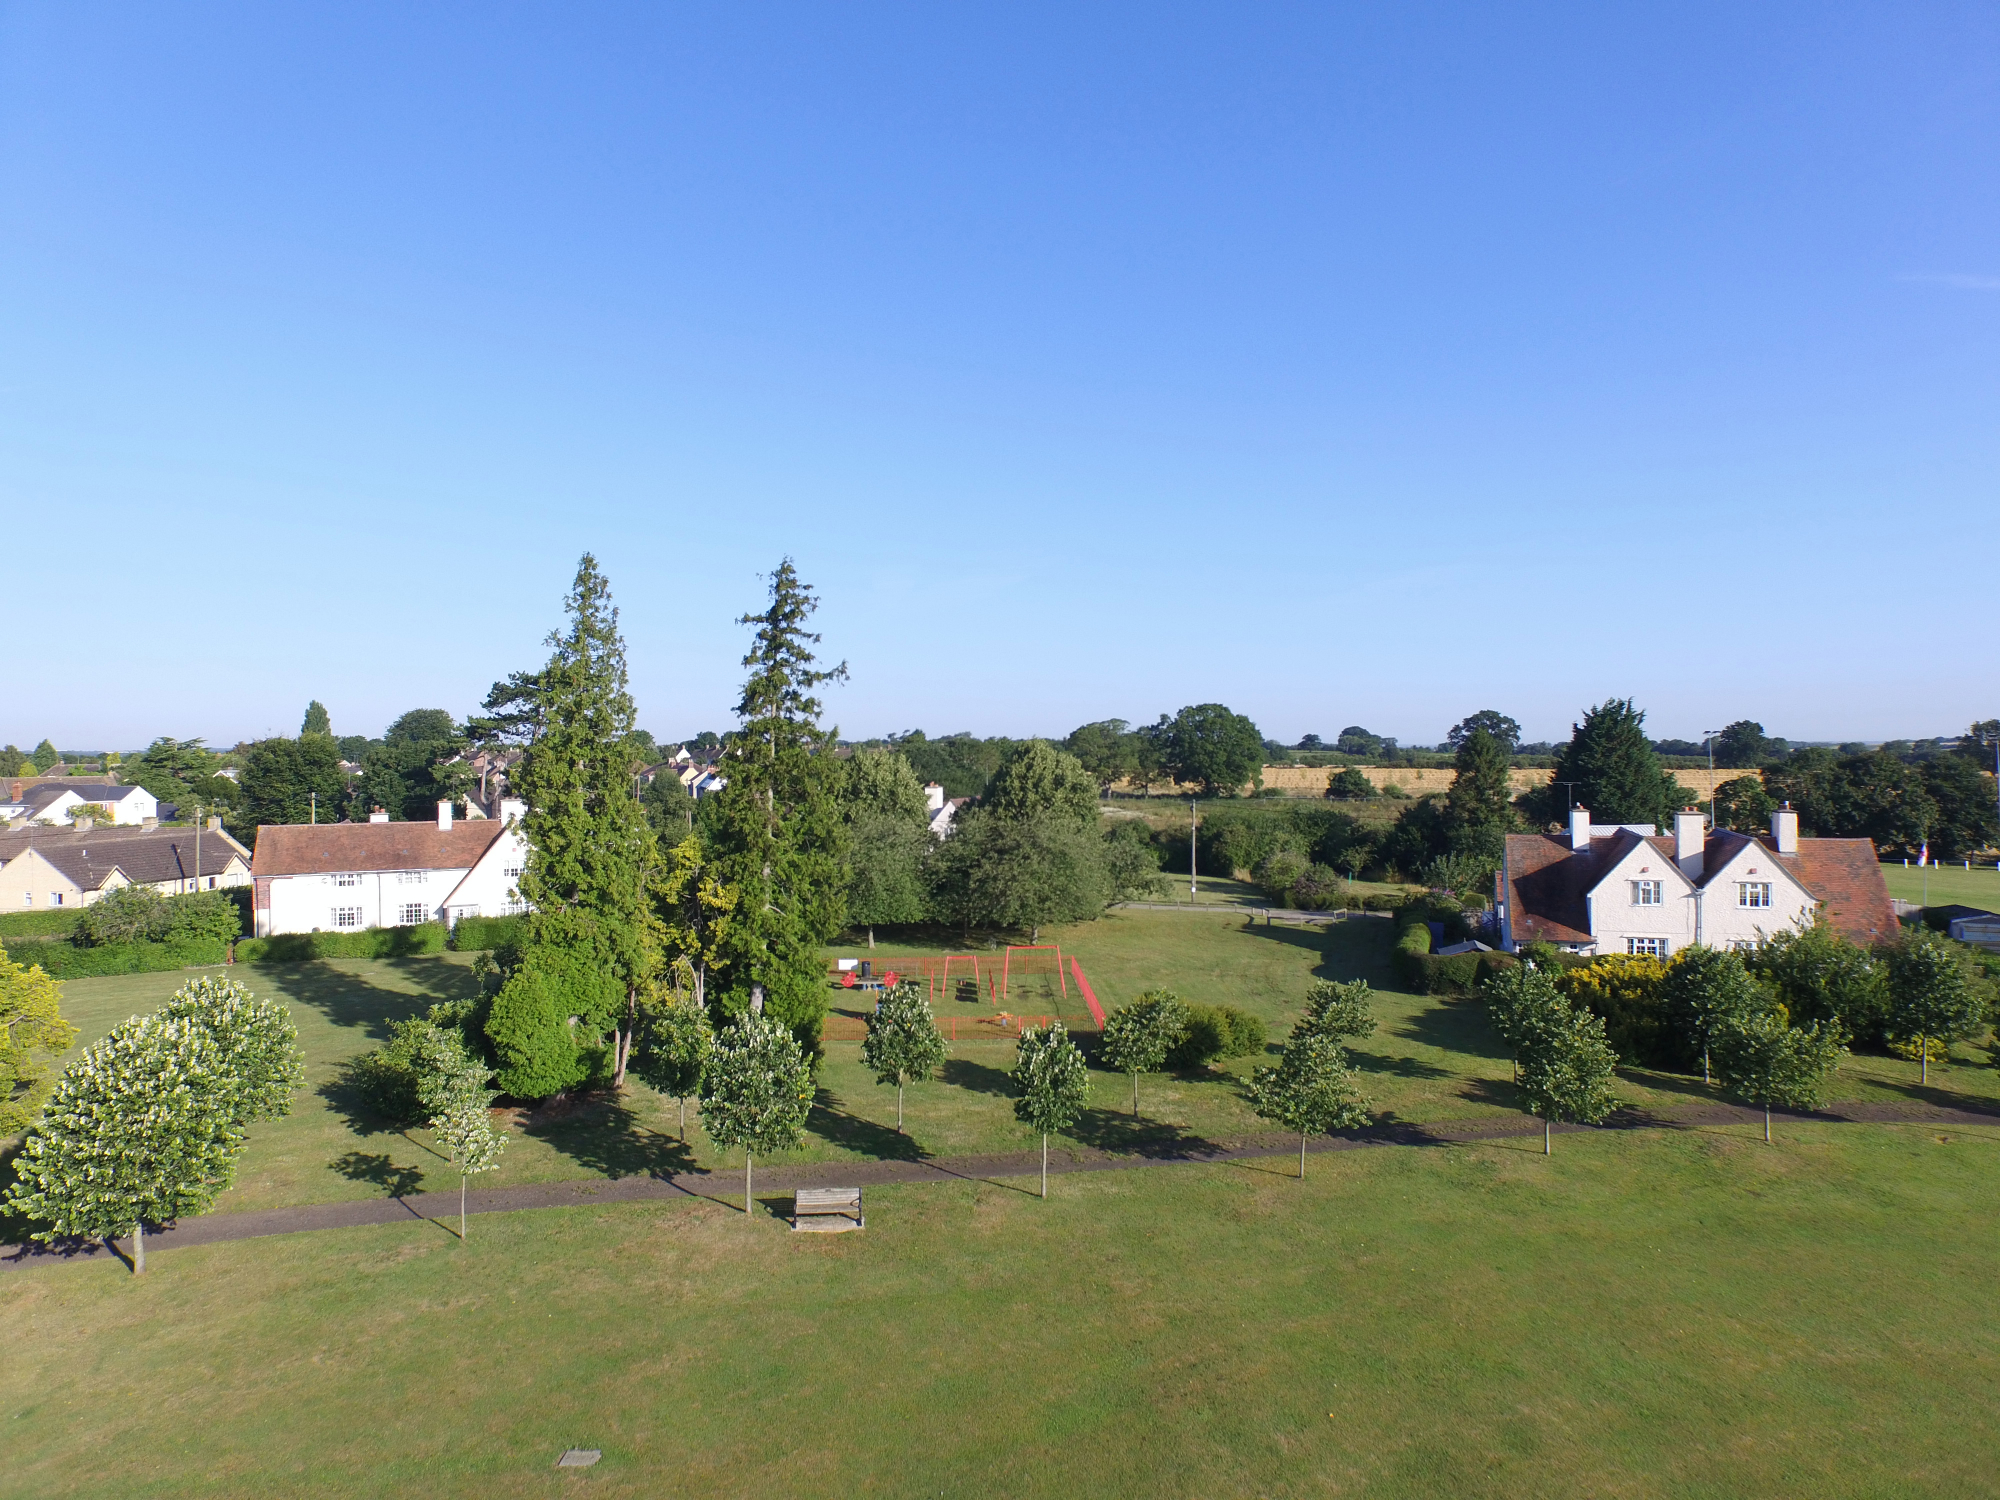 The Trust cottages in the Recreation Ground. Aerial photo by Neil B. Maw